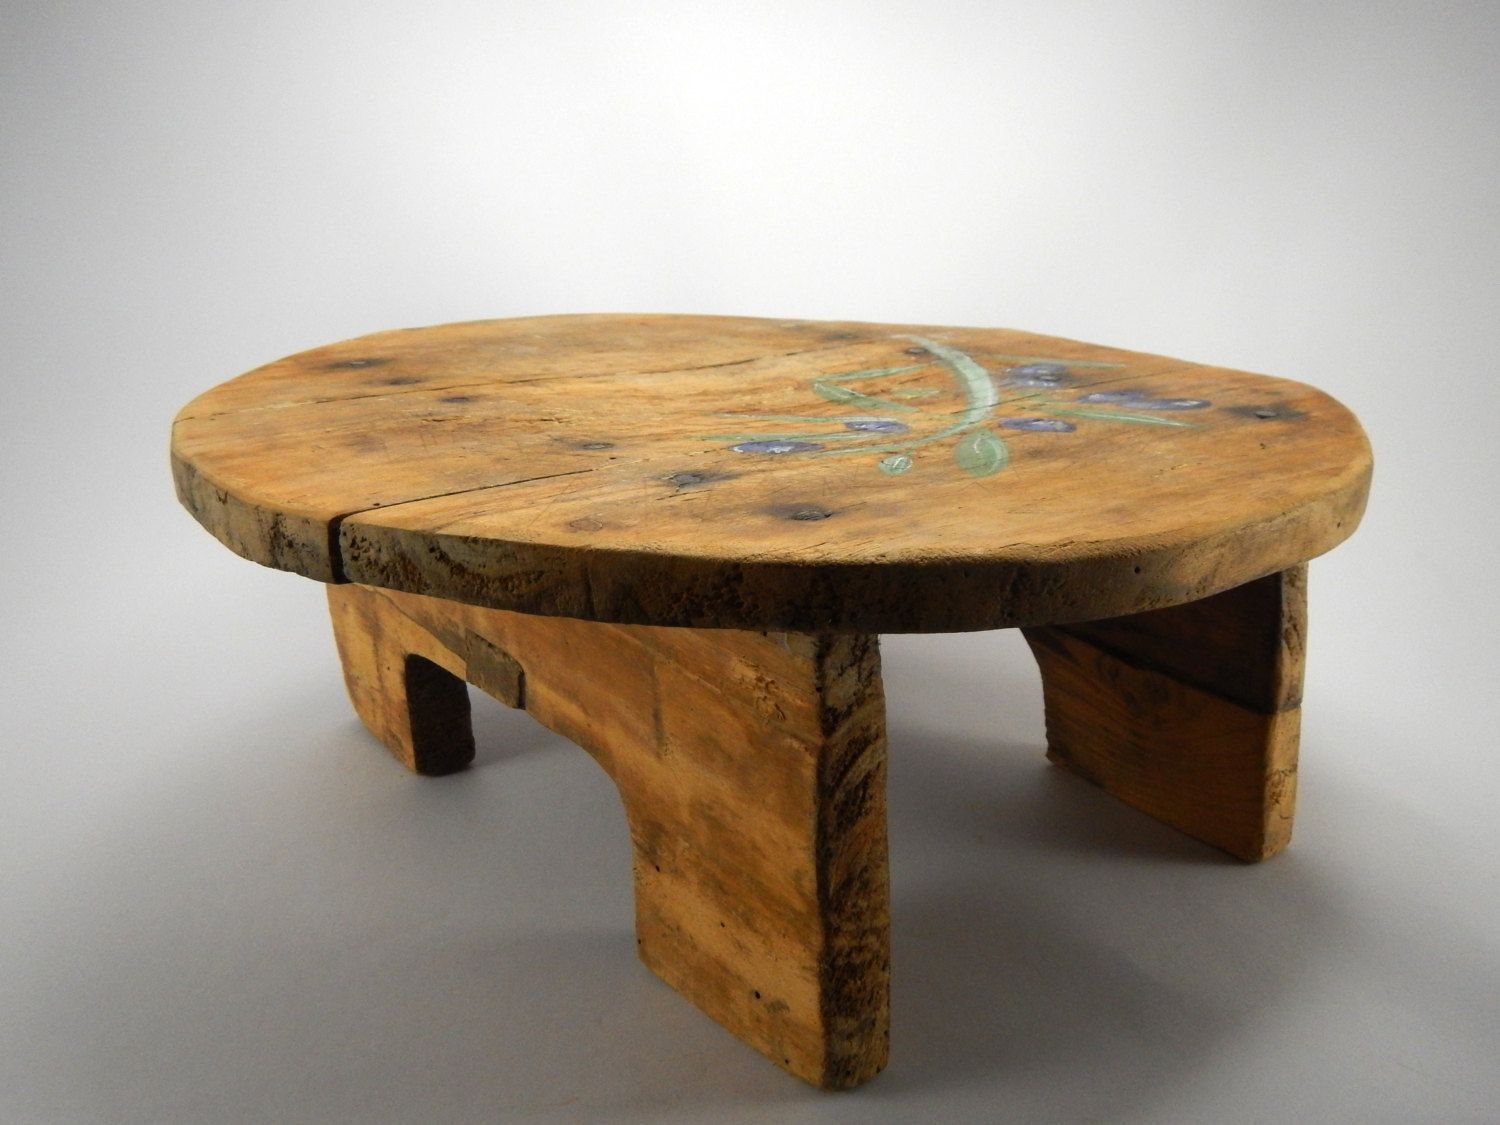 Antique Small Table Primitive Small Wooden Table Traditional Small Wooden Table Sofra Table